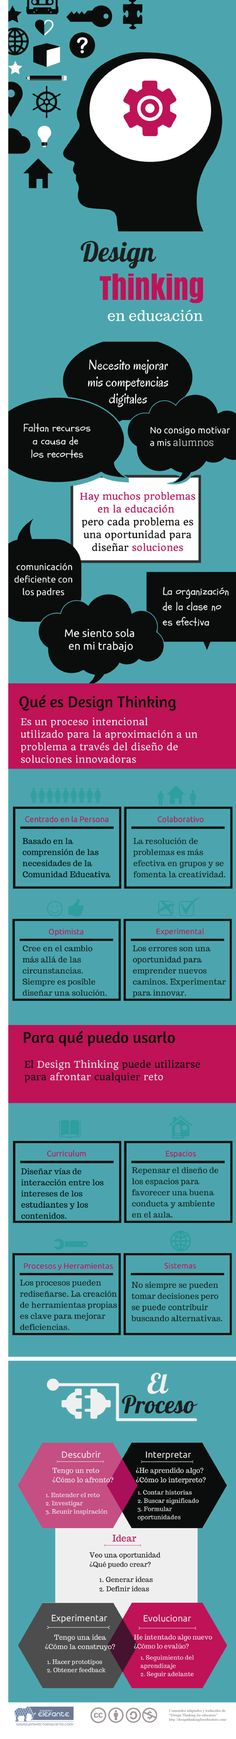 Design Thinking para la educación #infografia #infographic #education